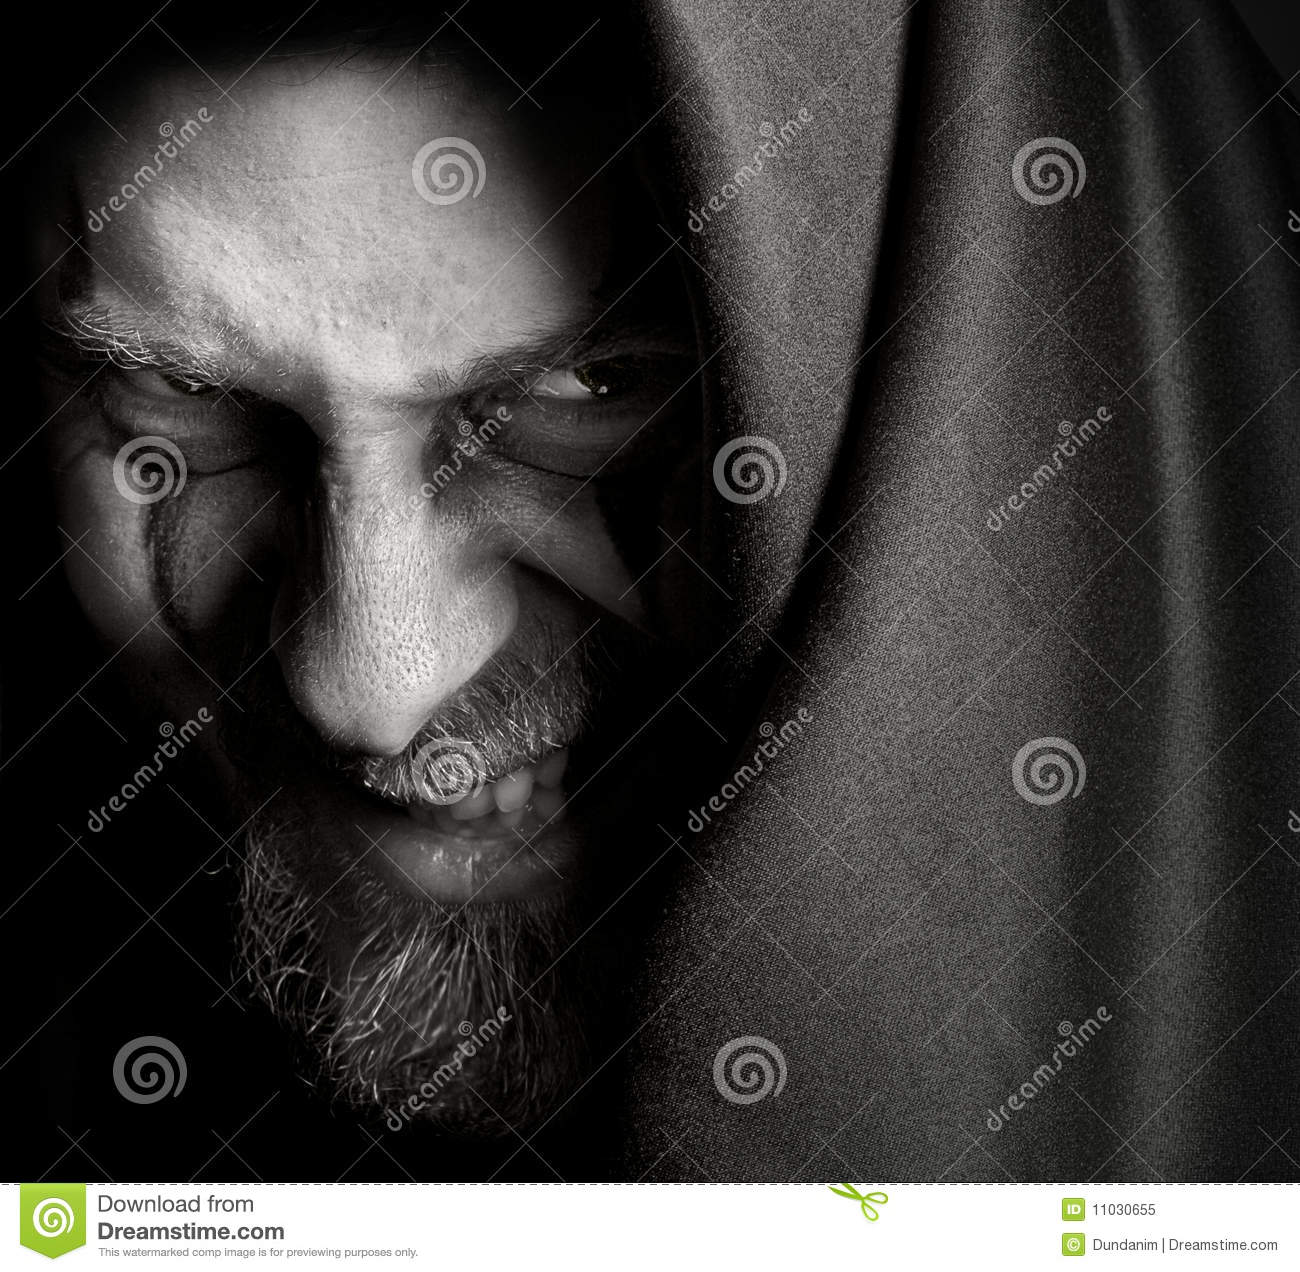 Evil Sinister Man With Malefic Wicked Grin Royalty Free Stock Photo - Image: 11030655